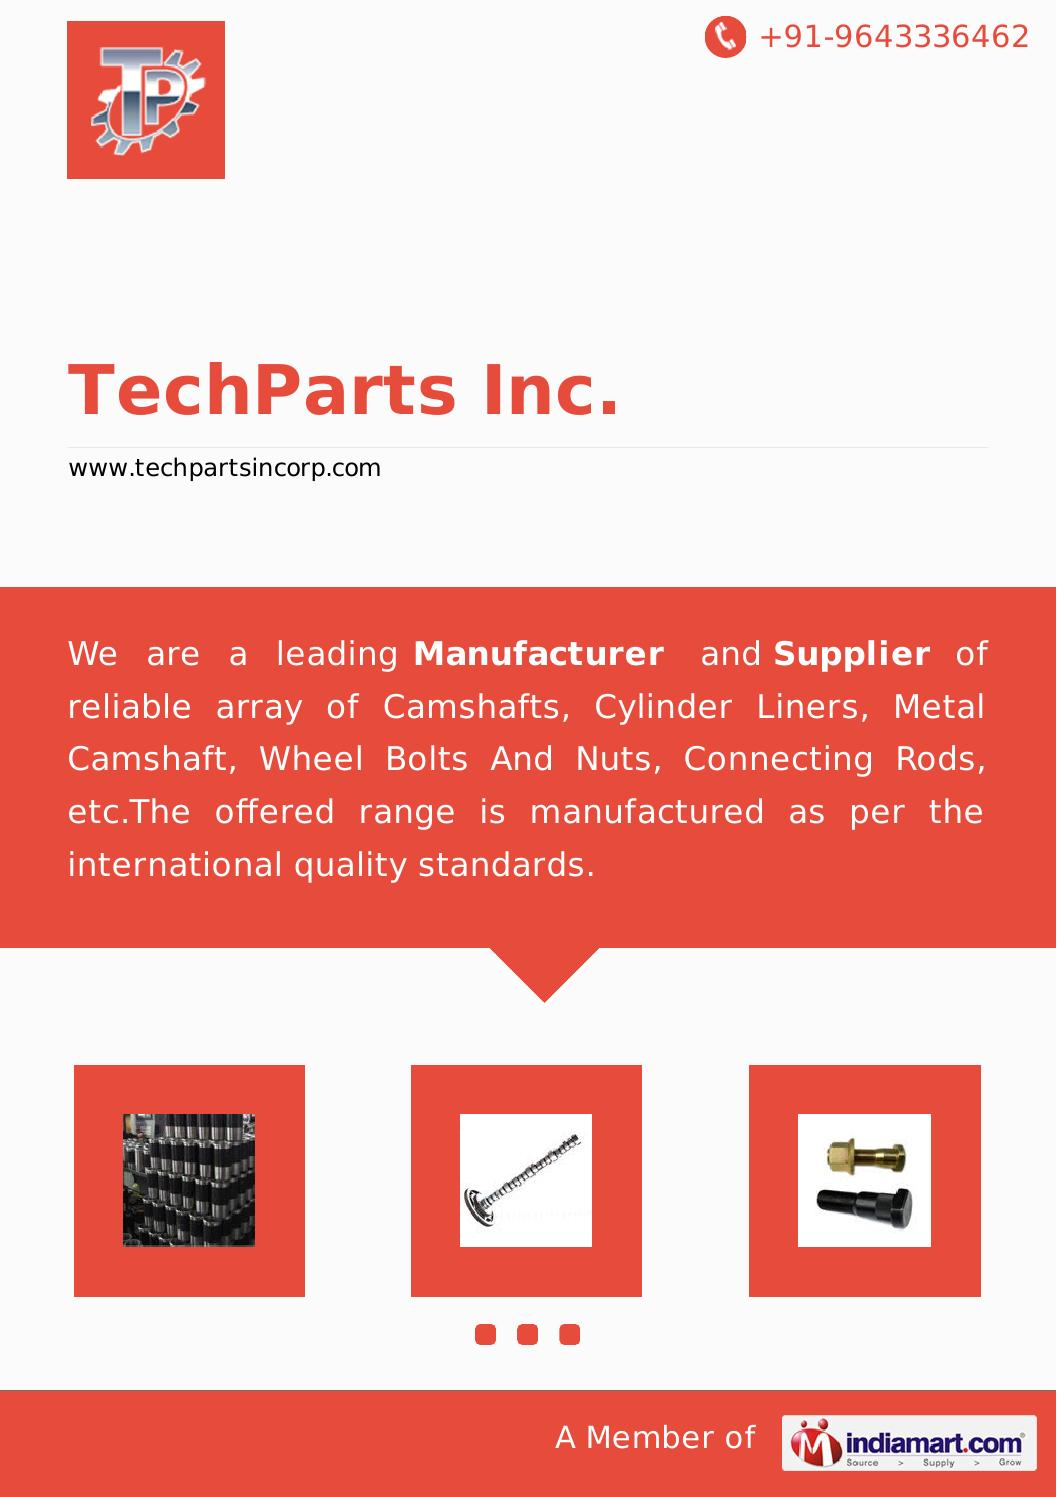 Cylinder Liners by Techparts inc by Gursimran Sabharwal - issuu